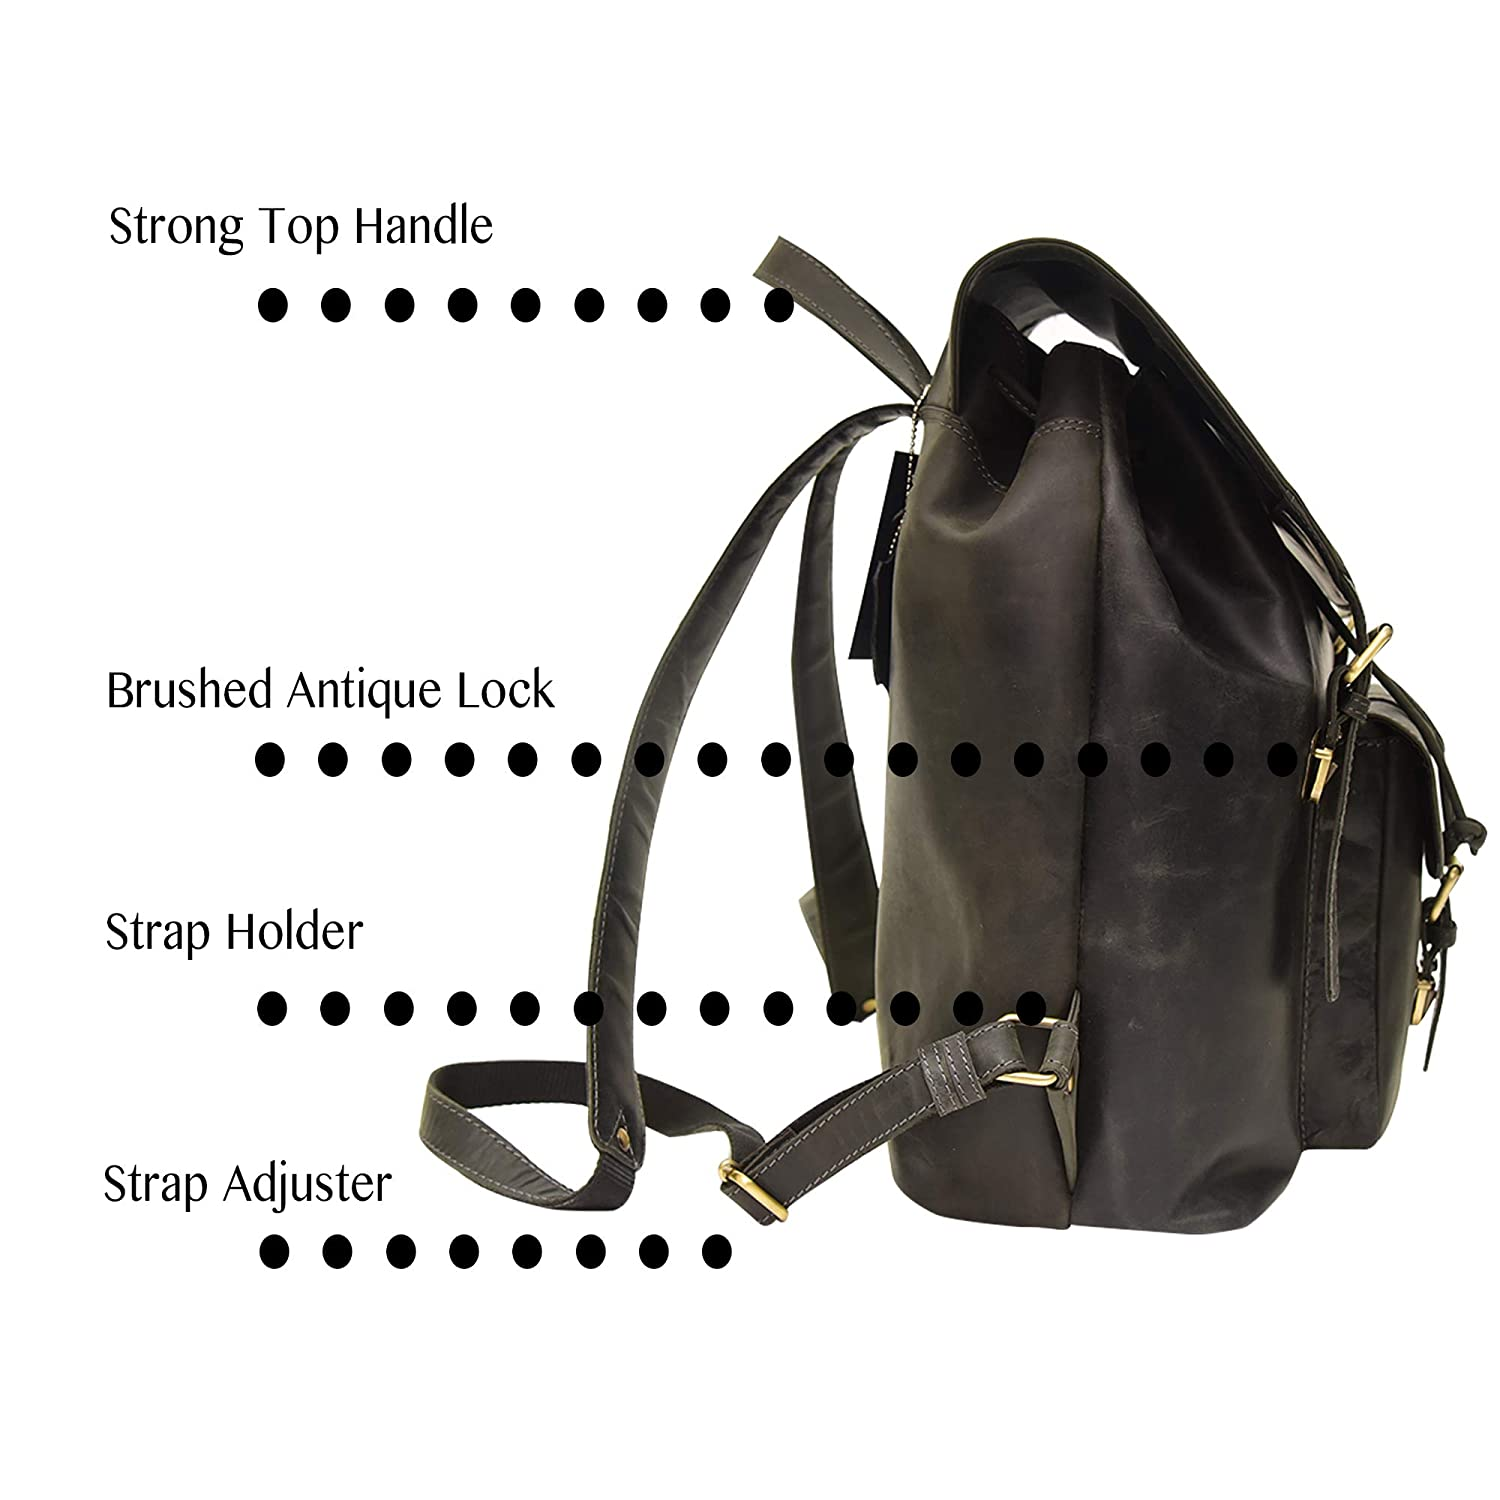 Picchio Top Quality Vintage Full Grain Leather Black Unisex Backpack